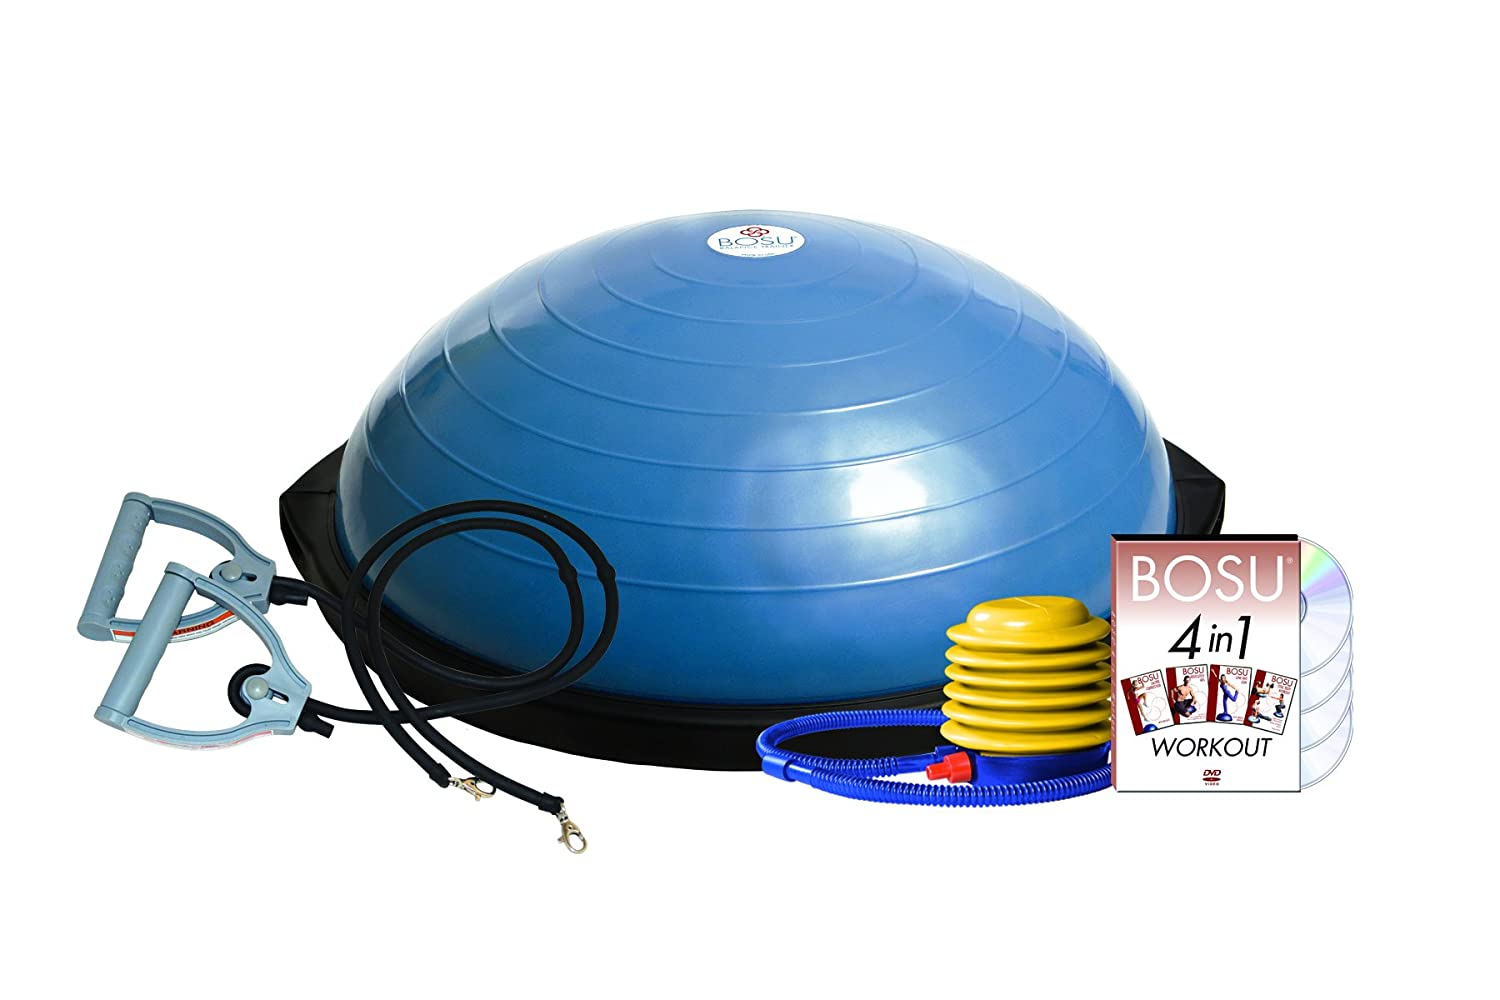 Bosu Balance Trainer with Resistance Bands Ball Bounce and Sport Inc. 72-10850-3COS